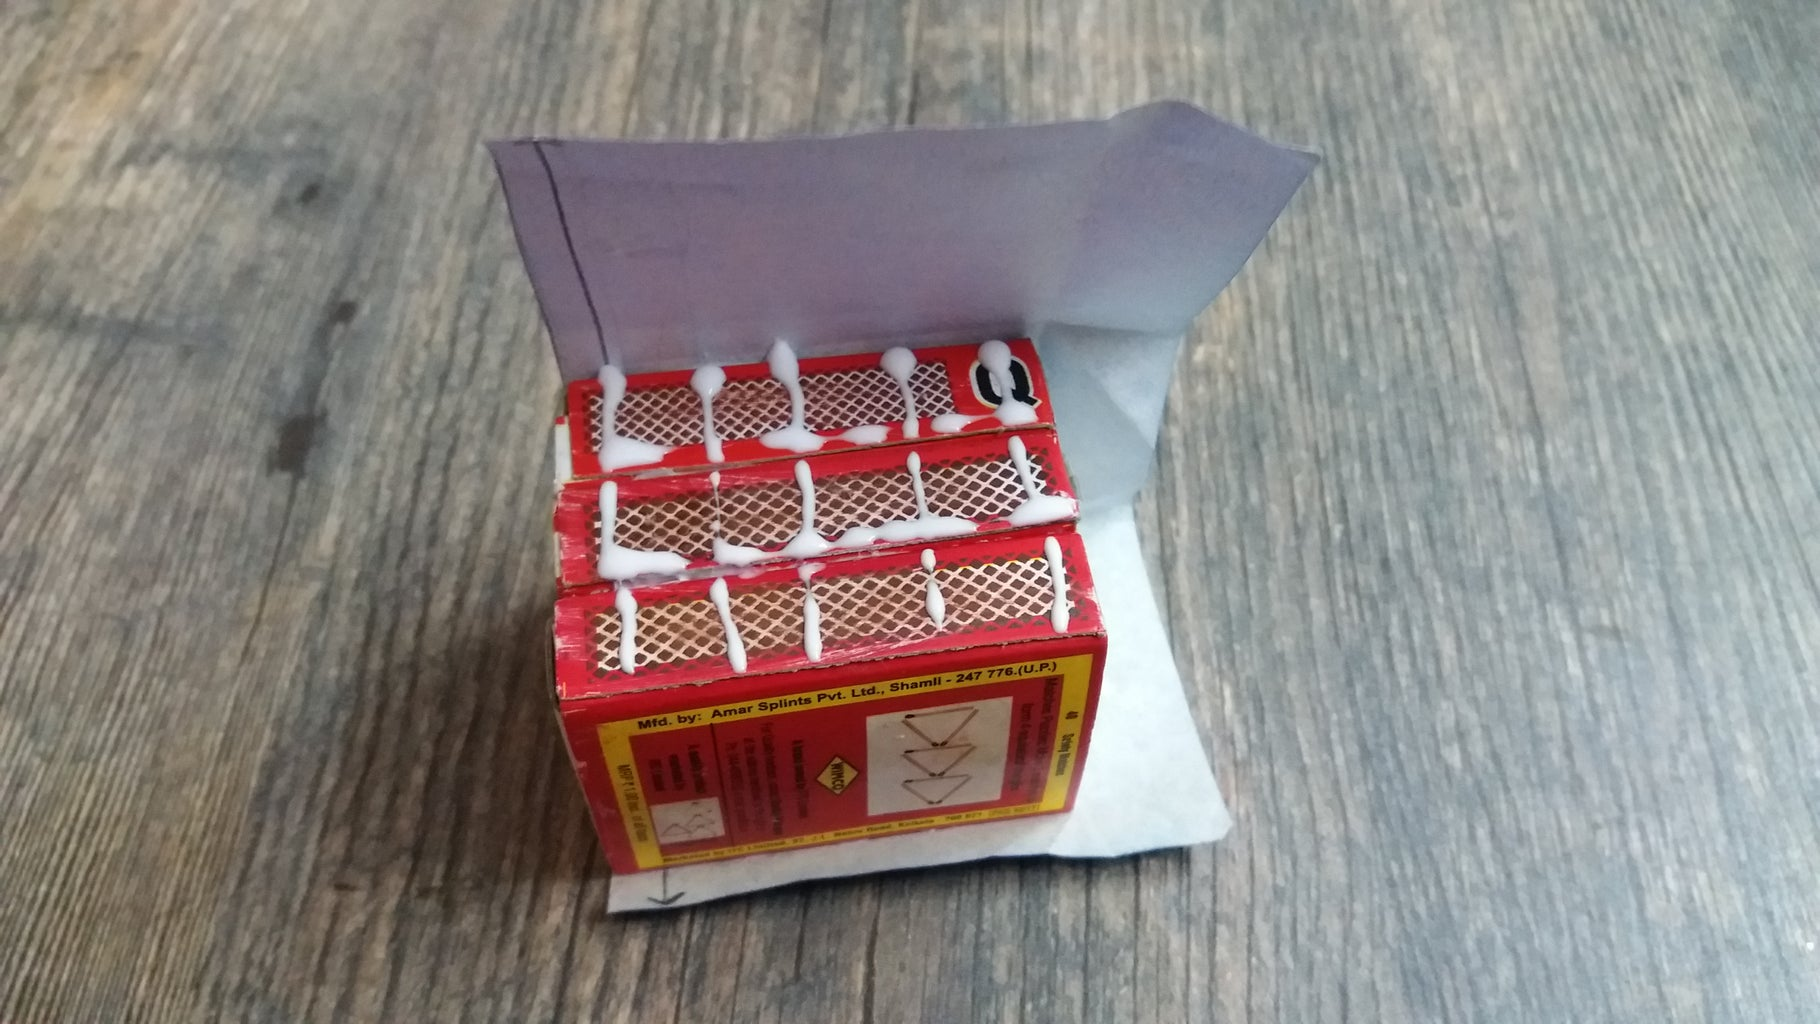 Step-3: Covering the Match Boxes With Coloured Sheets